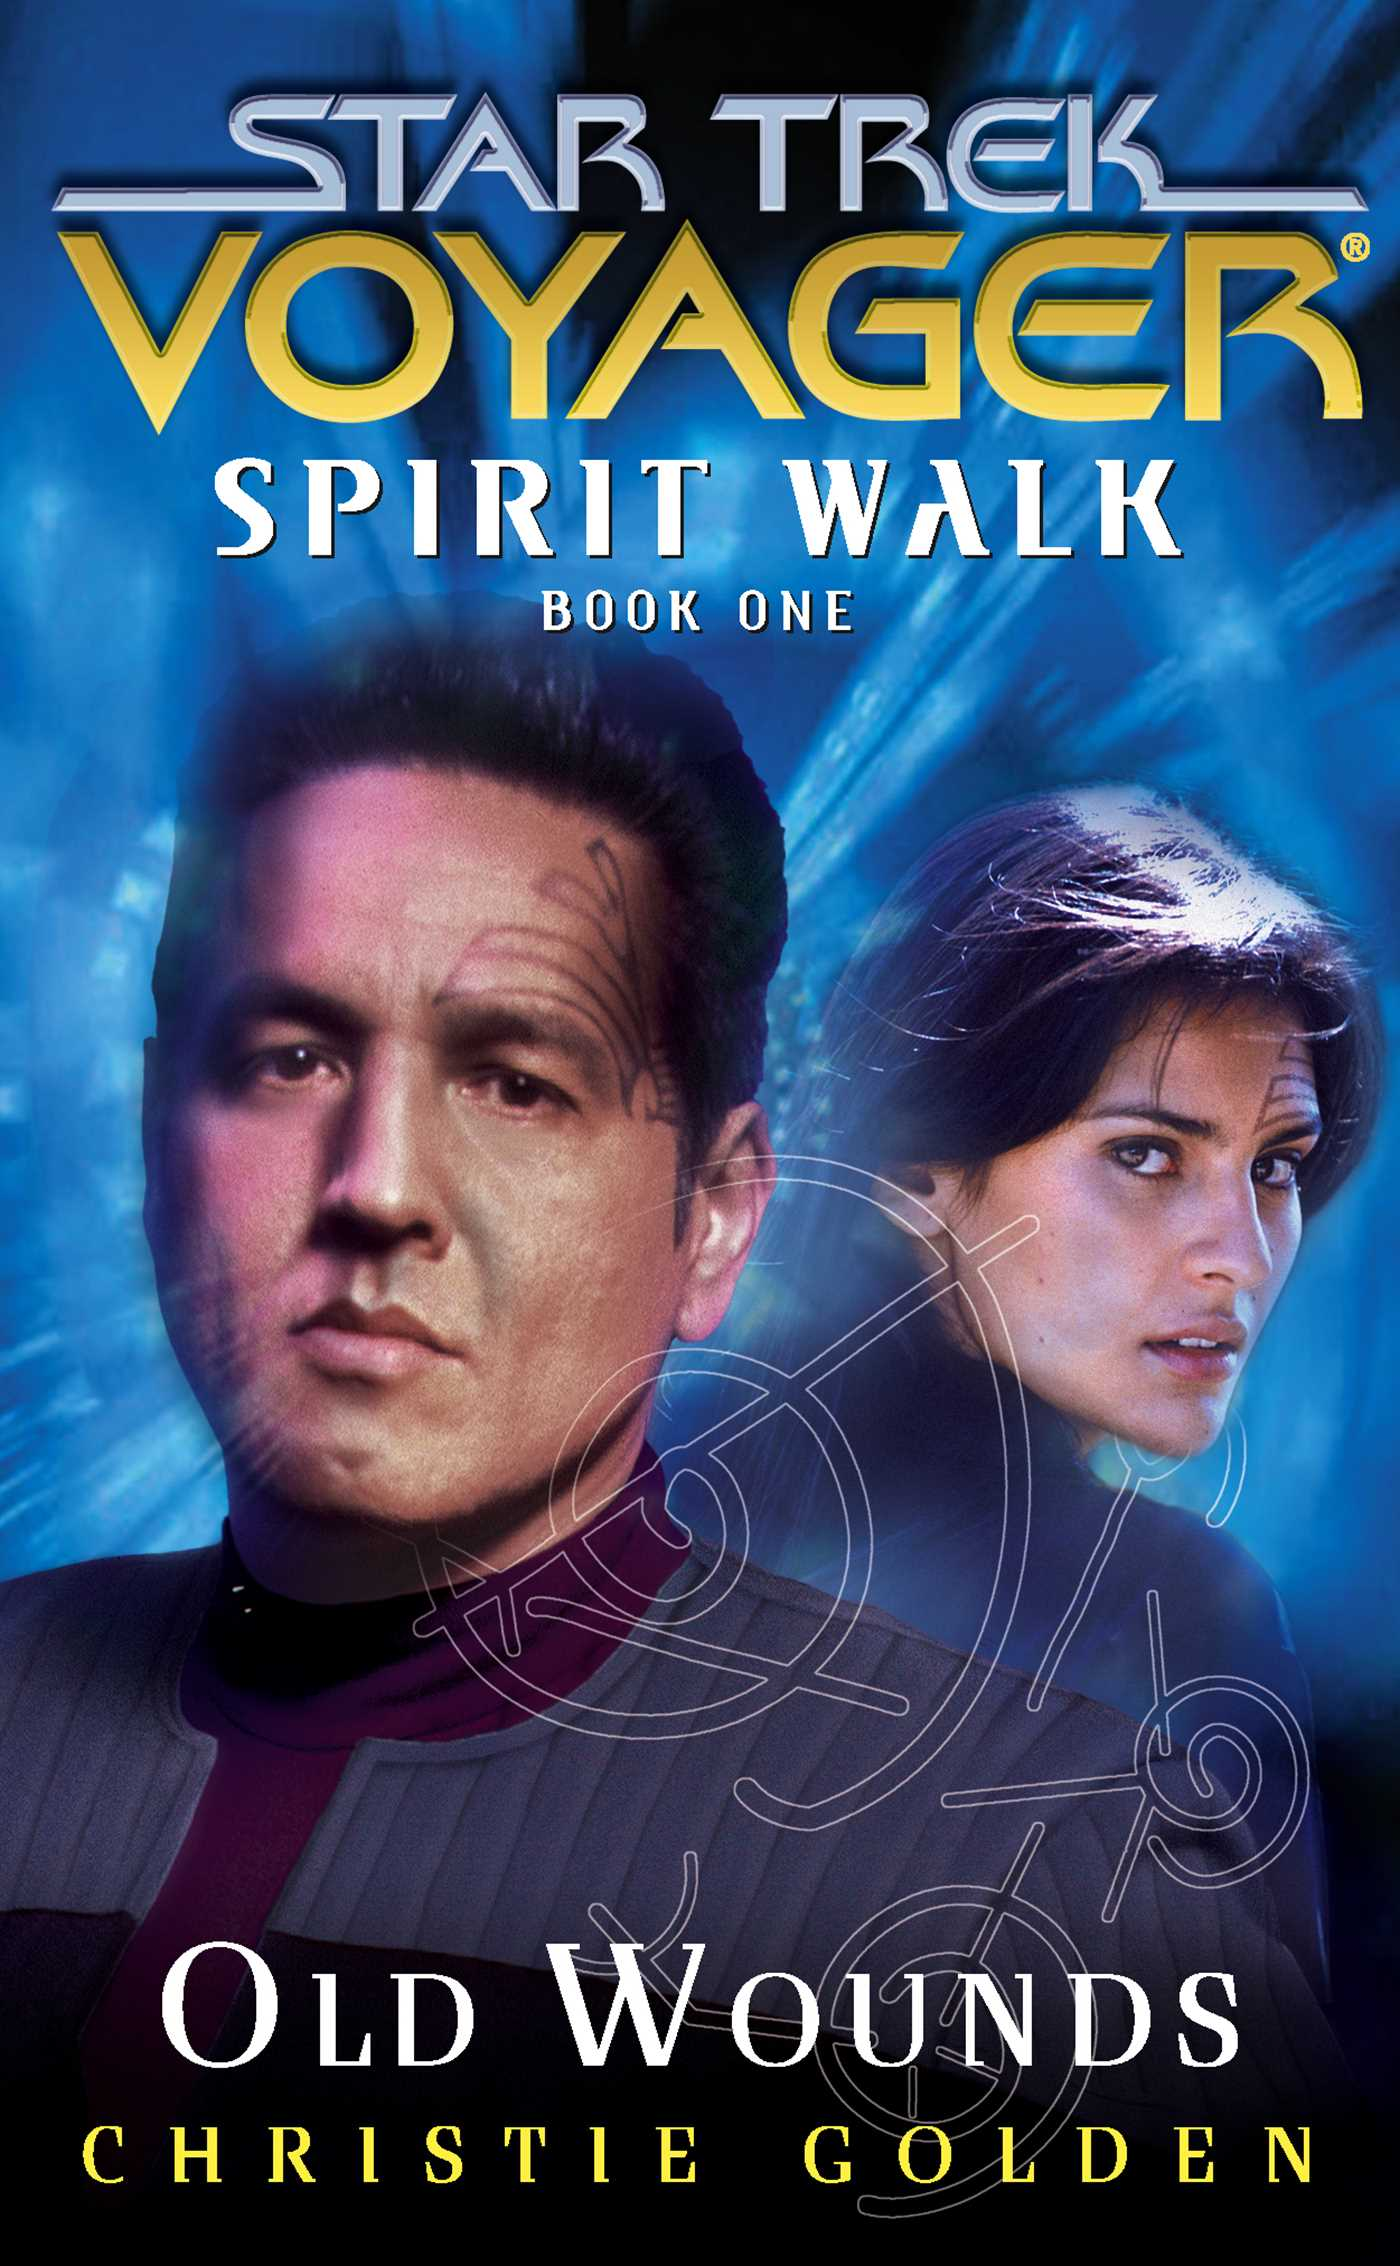 Star-trek-voyager-spirit-walk-1-old-wounds-9781416500056_hr